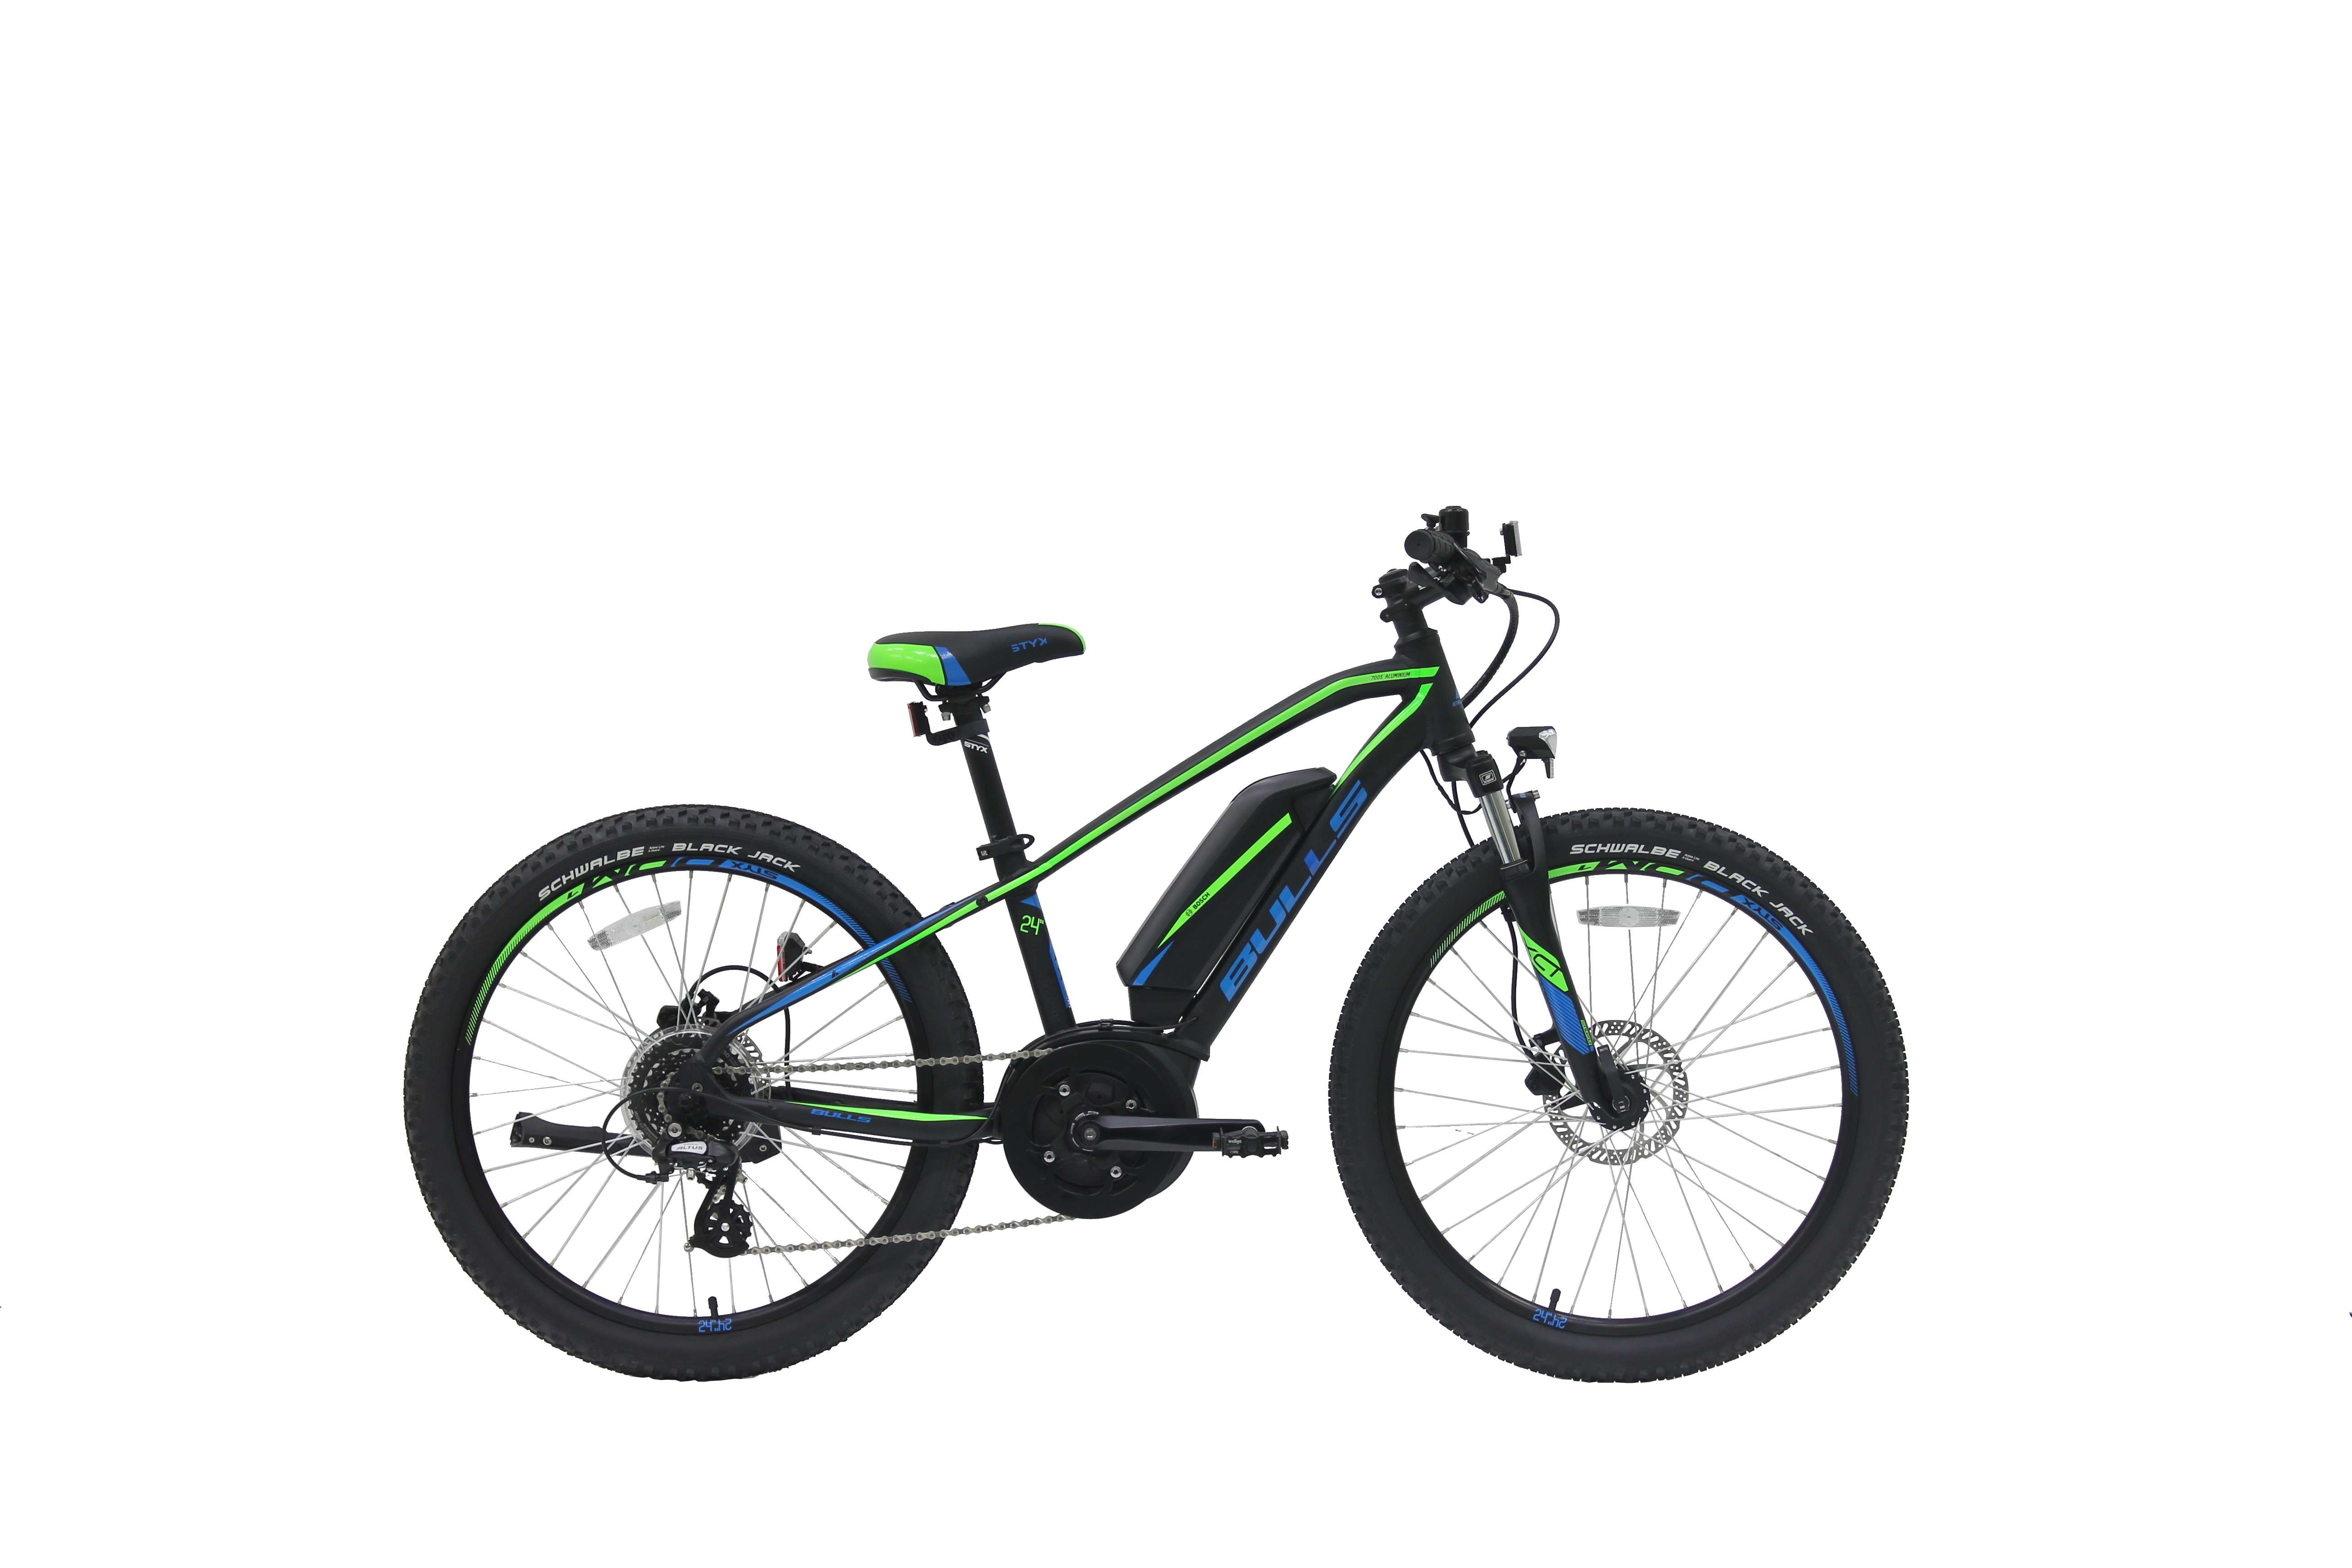 Electric bike dealers in ARizona selling Bulls